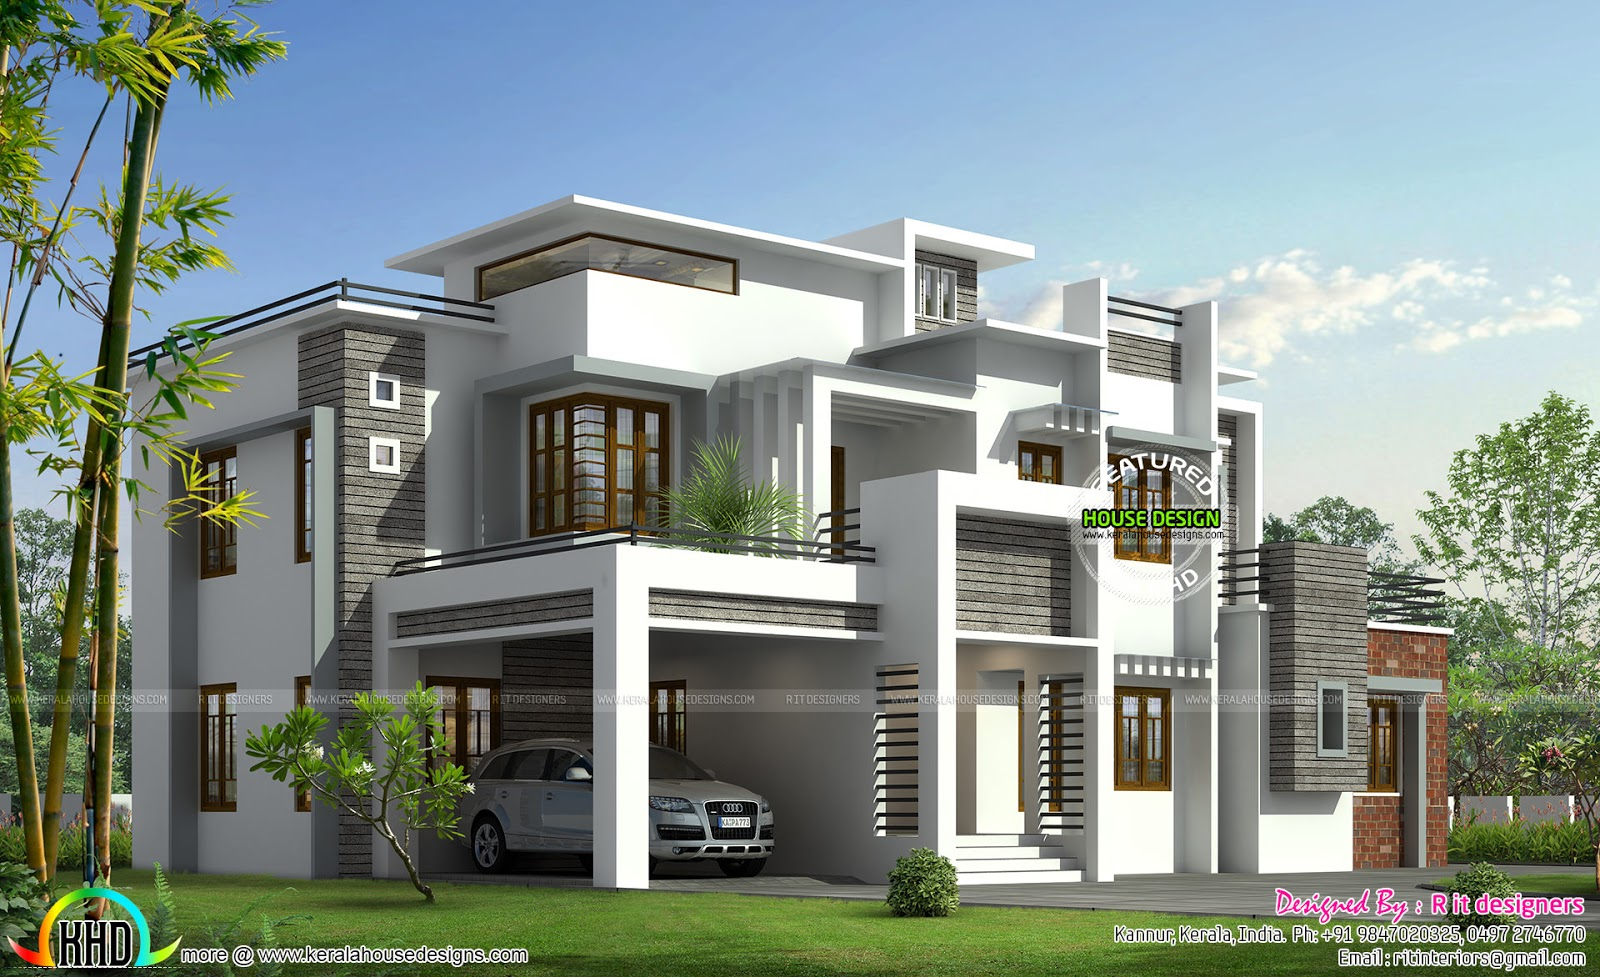 Box model contemporary house kerala home design and for New modern building design